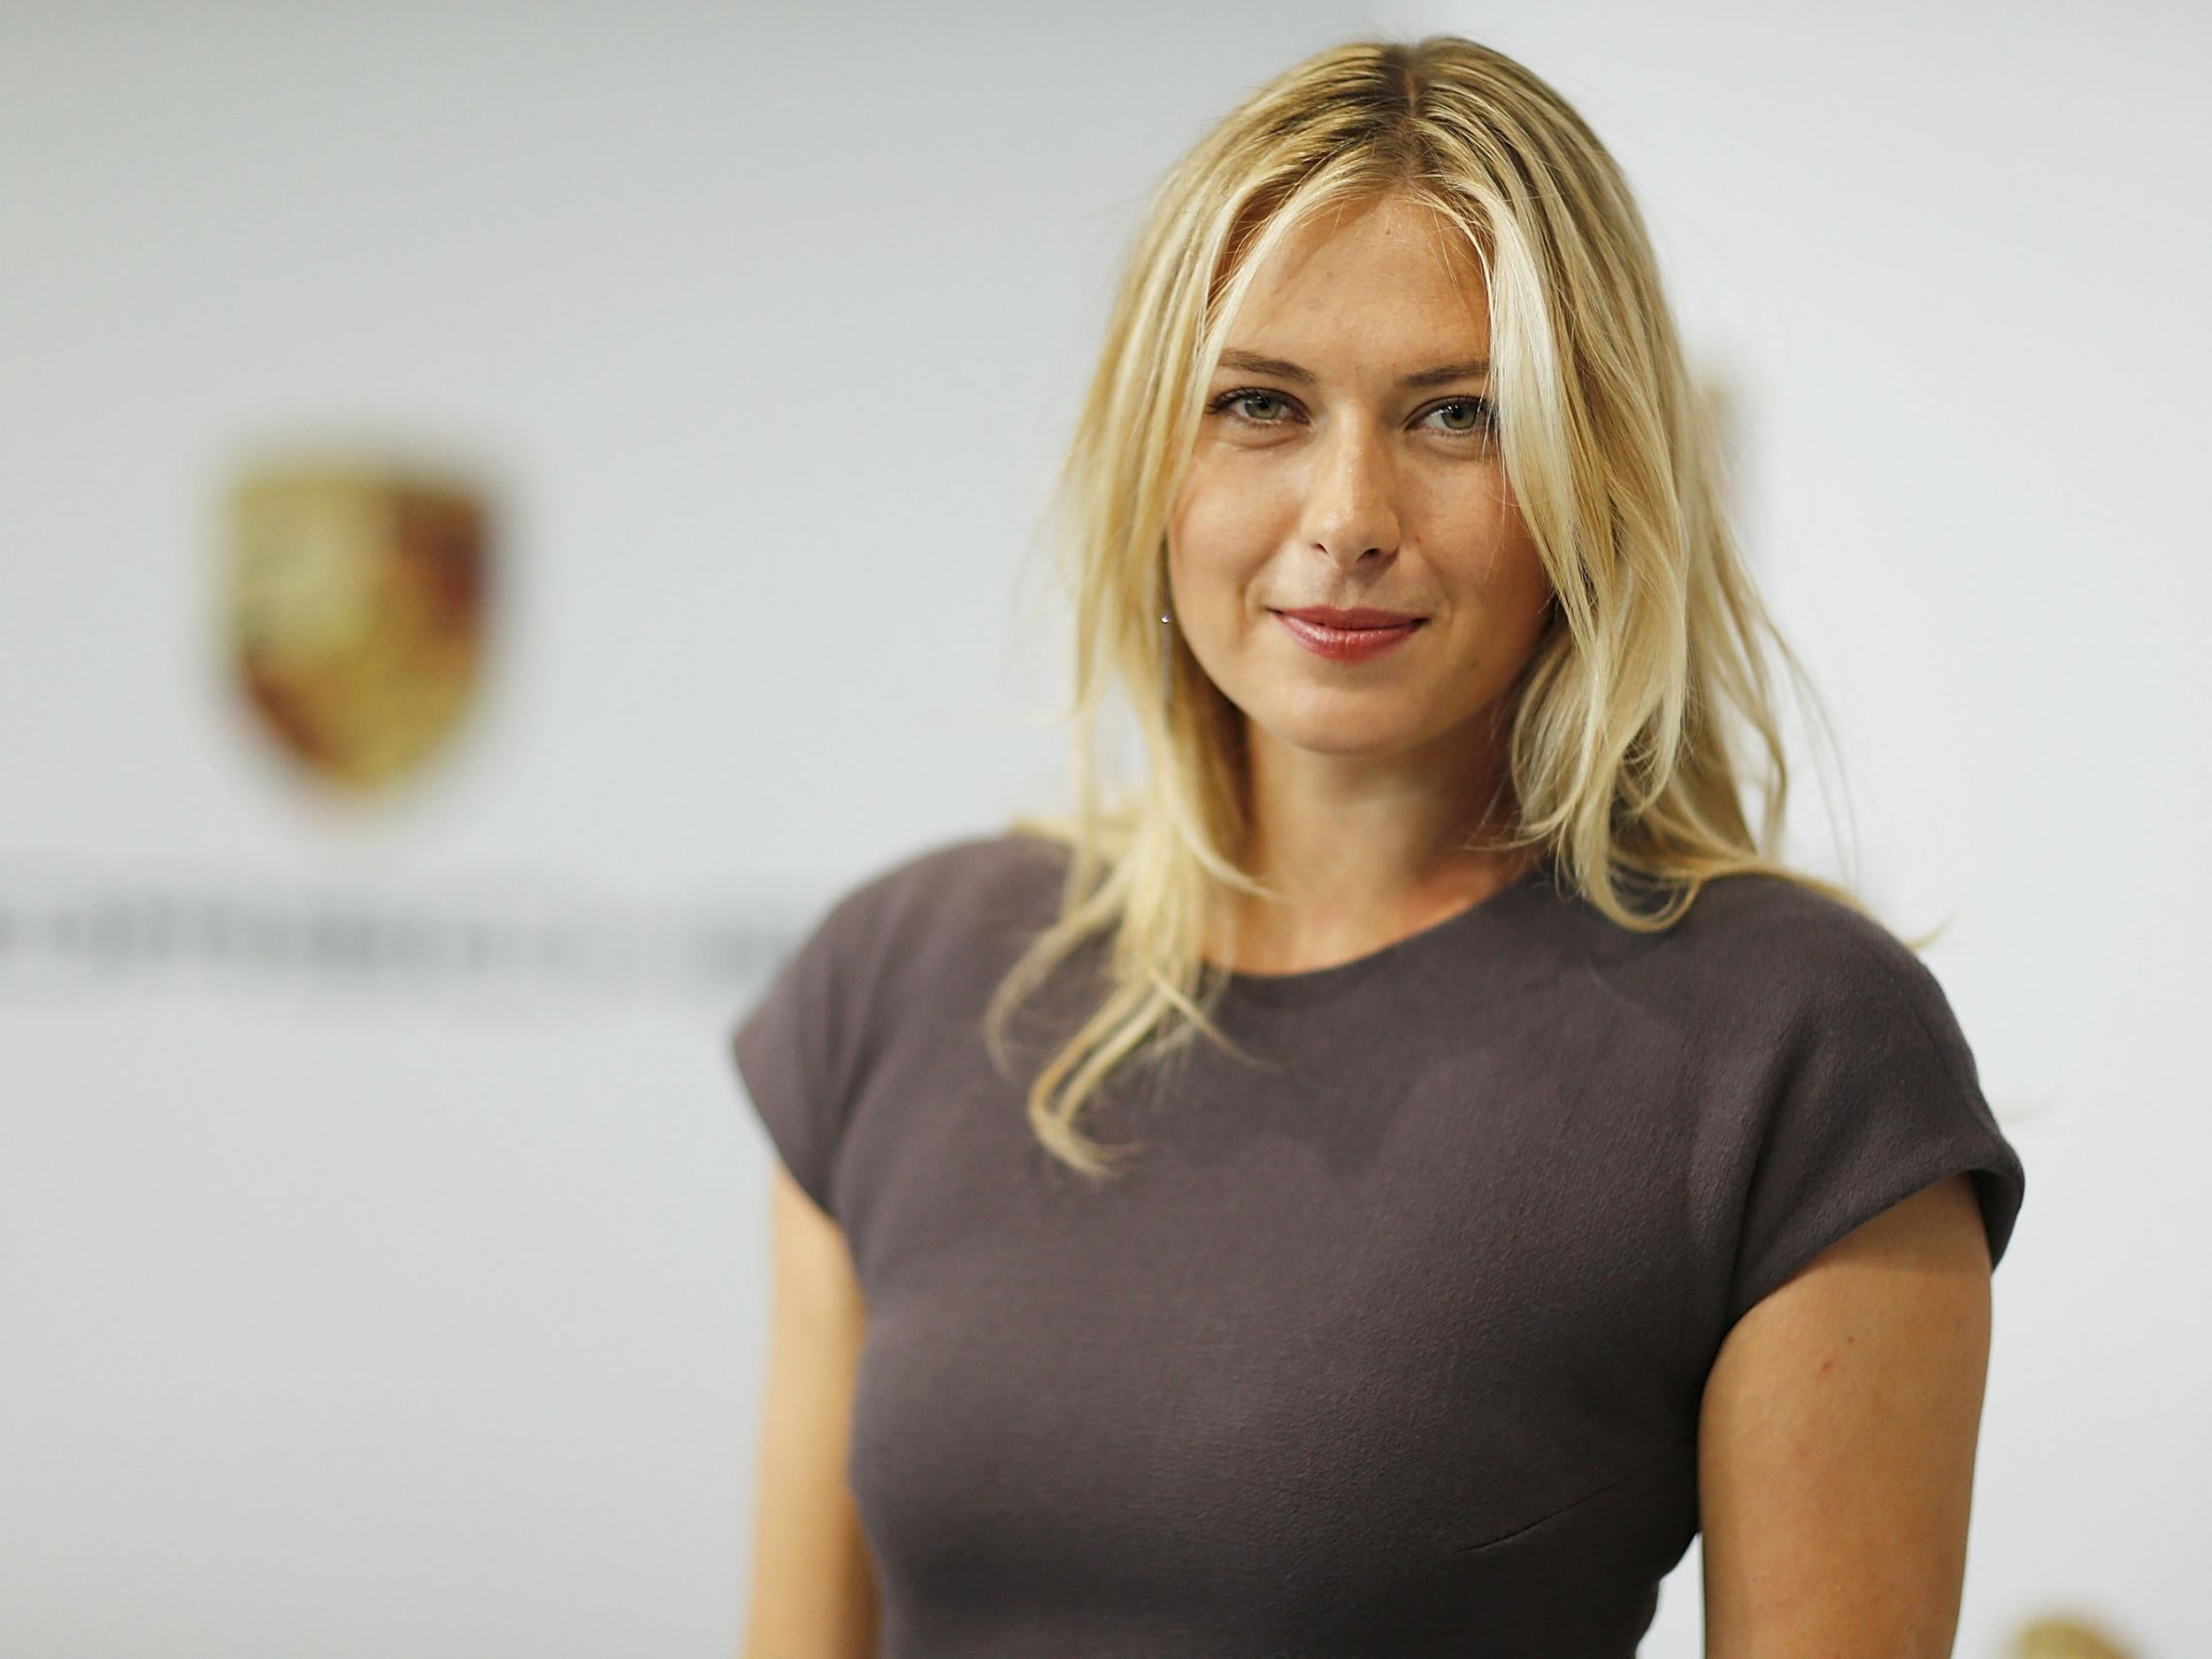 Maria Sharapova Fought For Truth After Drug Ban So She Can End Career On Her Own Terms The